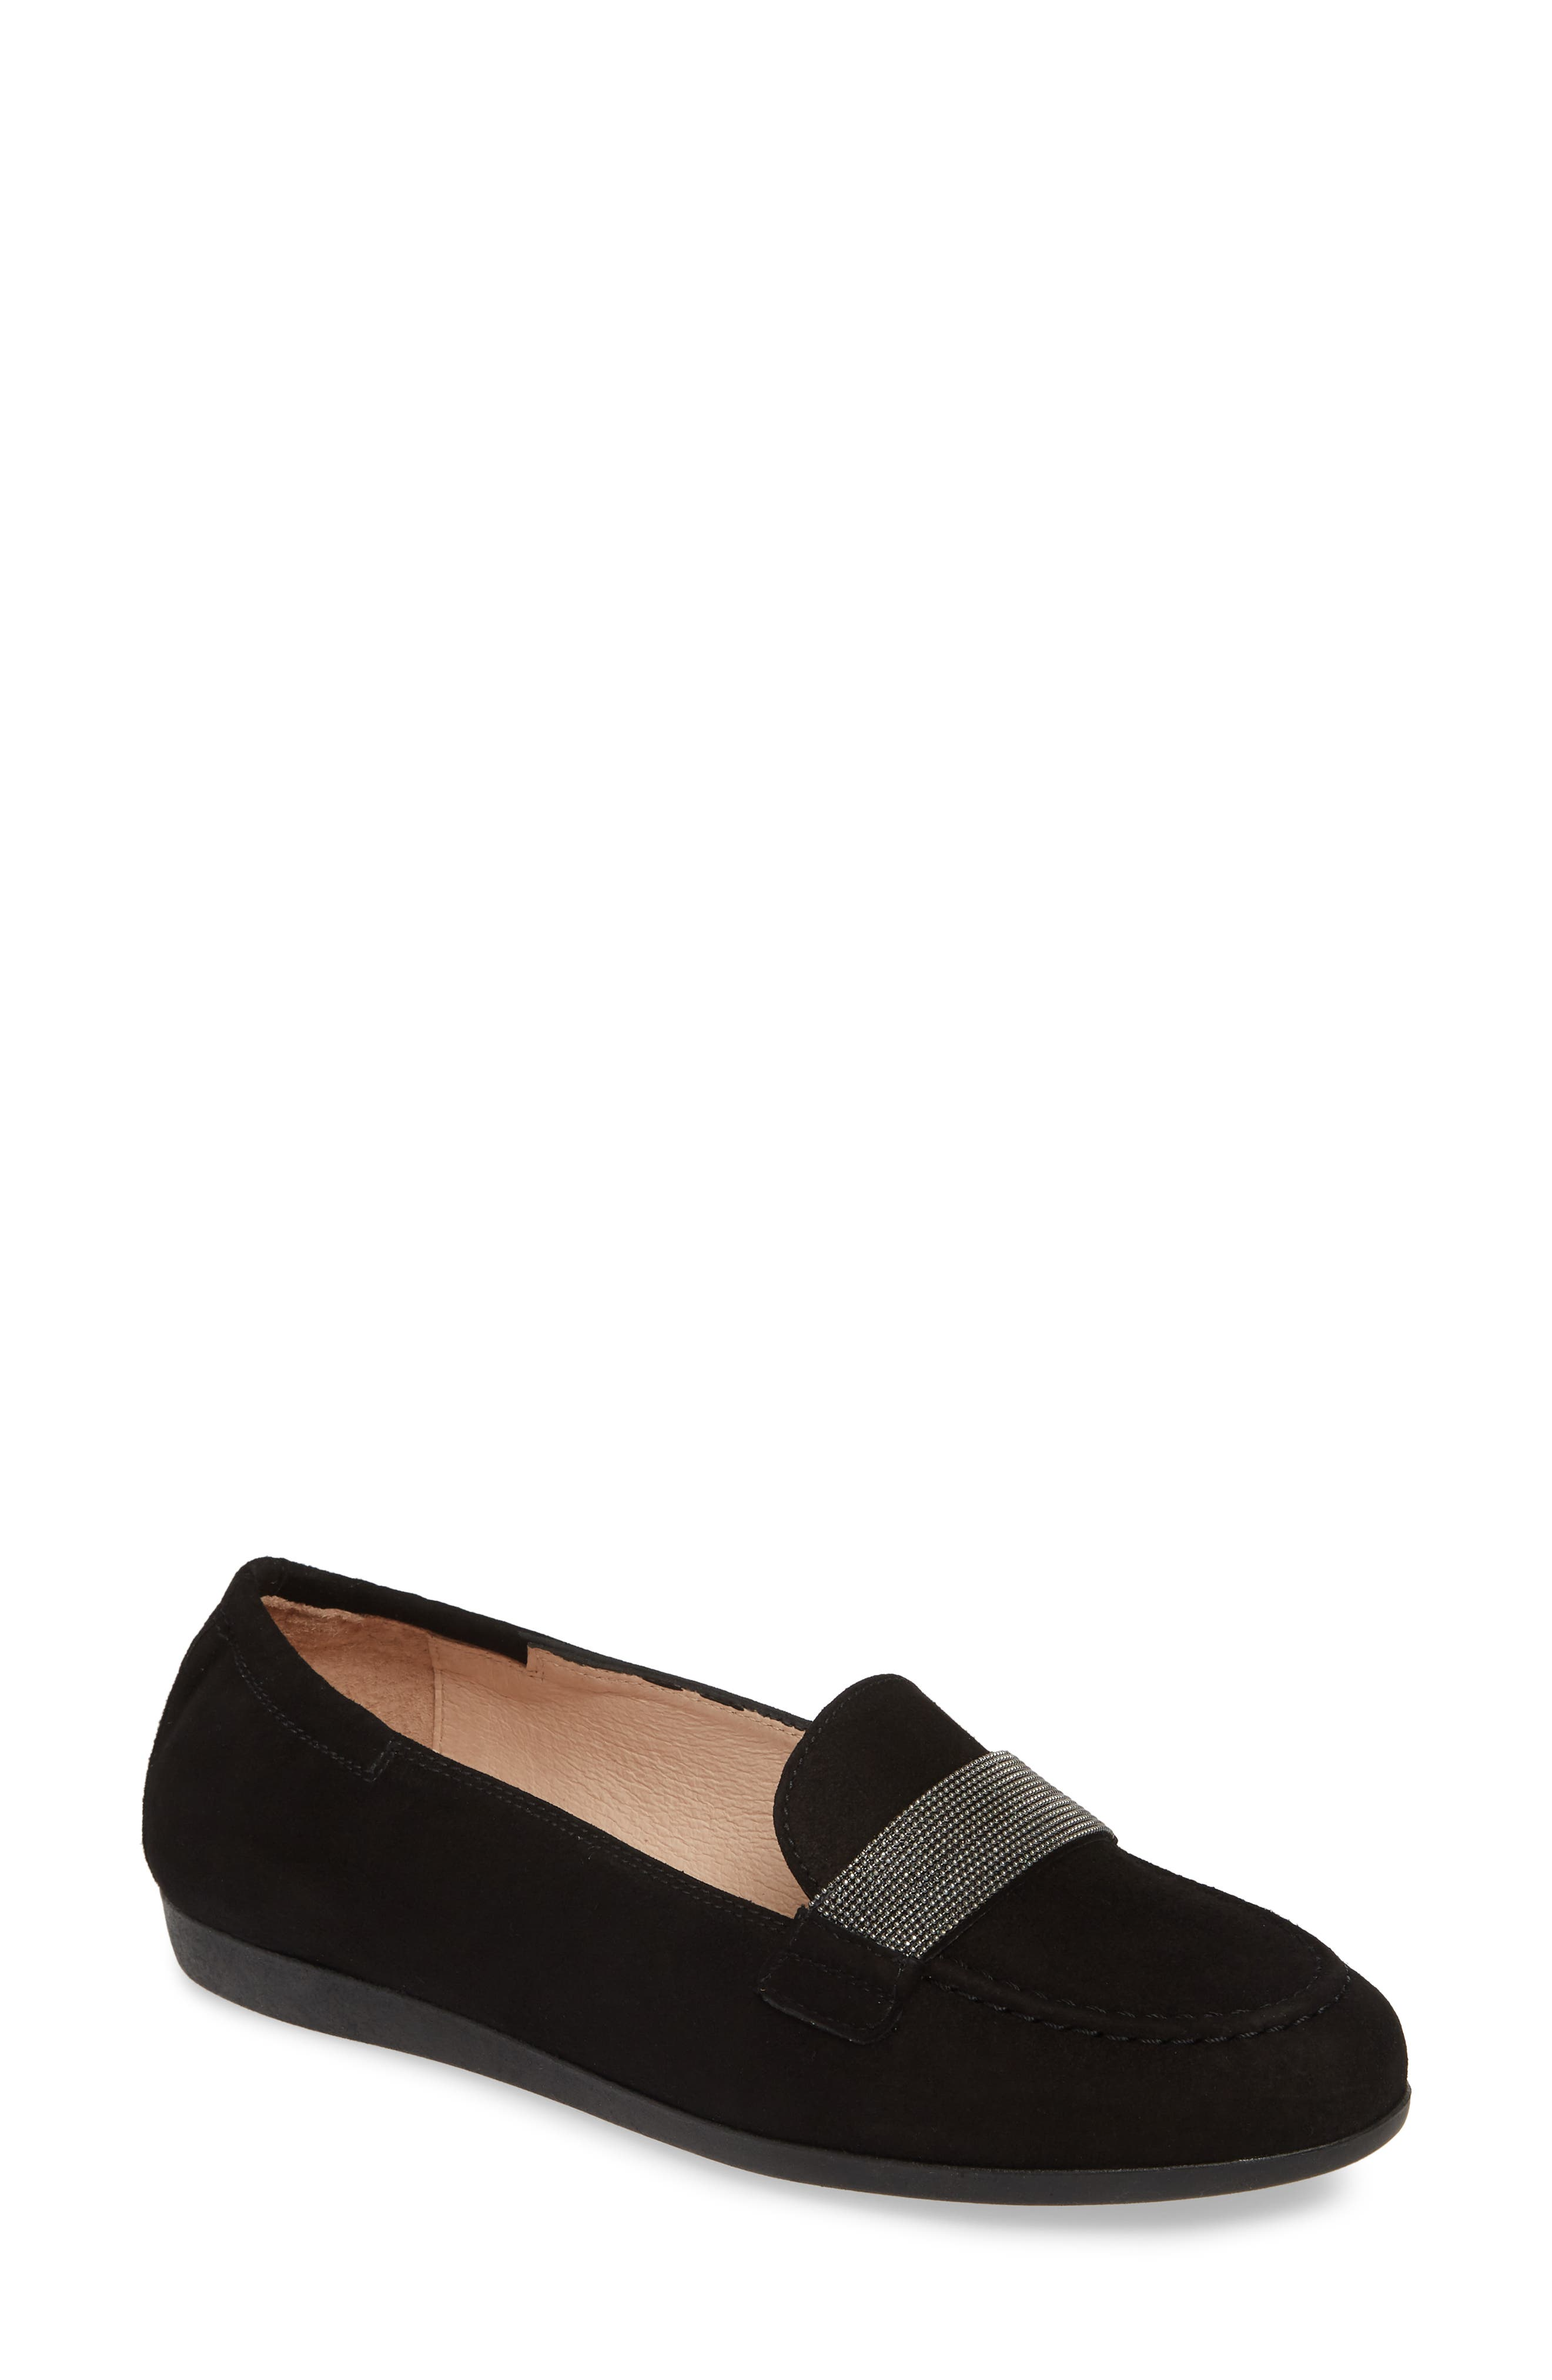 HISPANITAS Canady Loafer, Main, color, BLACK LEATHER